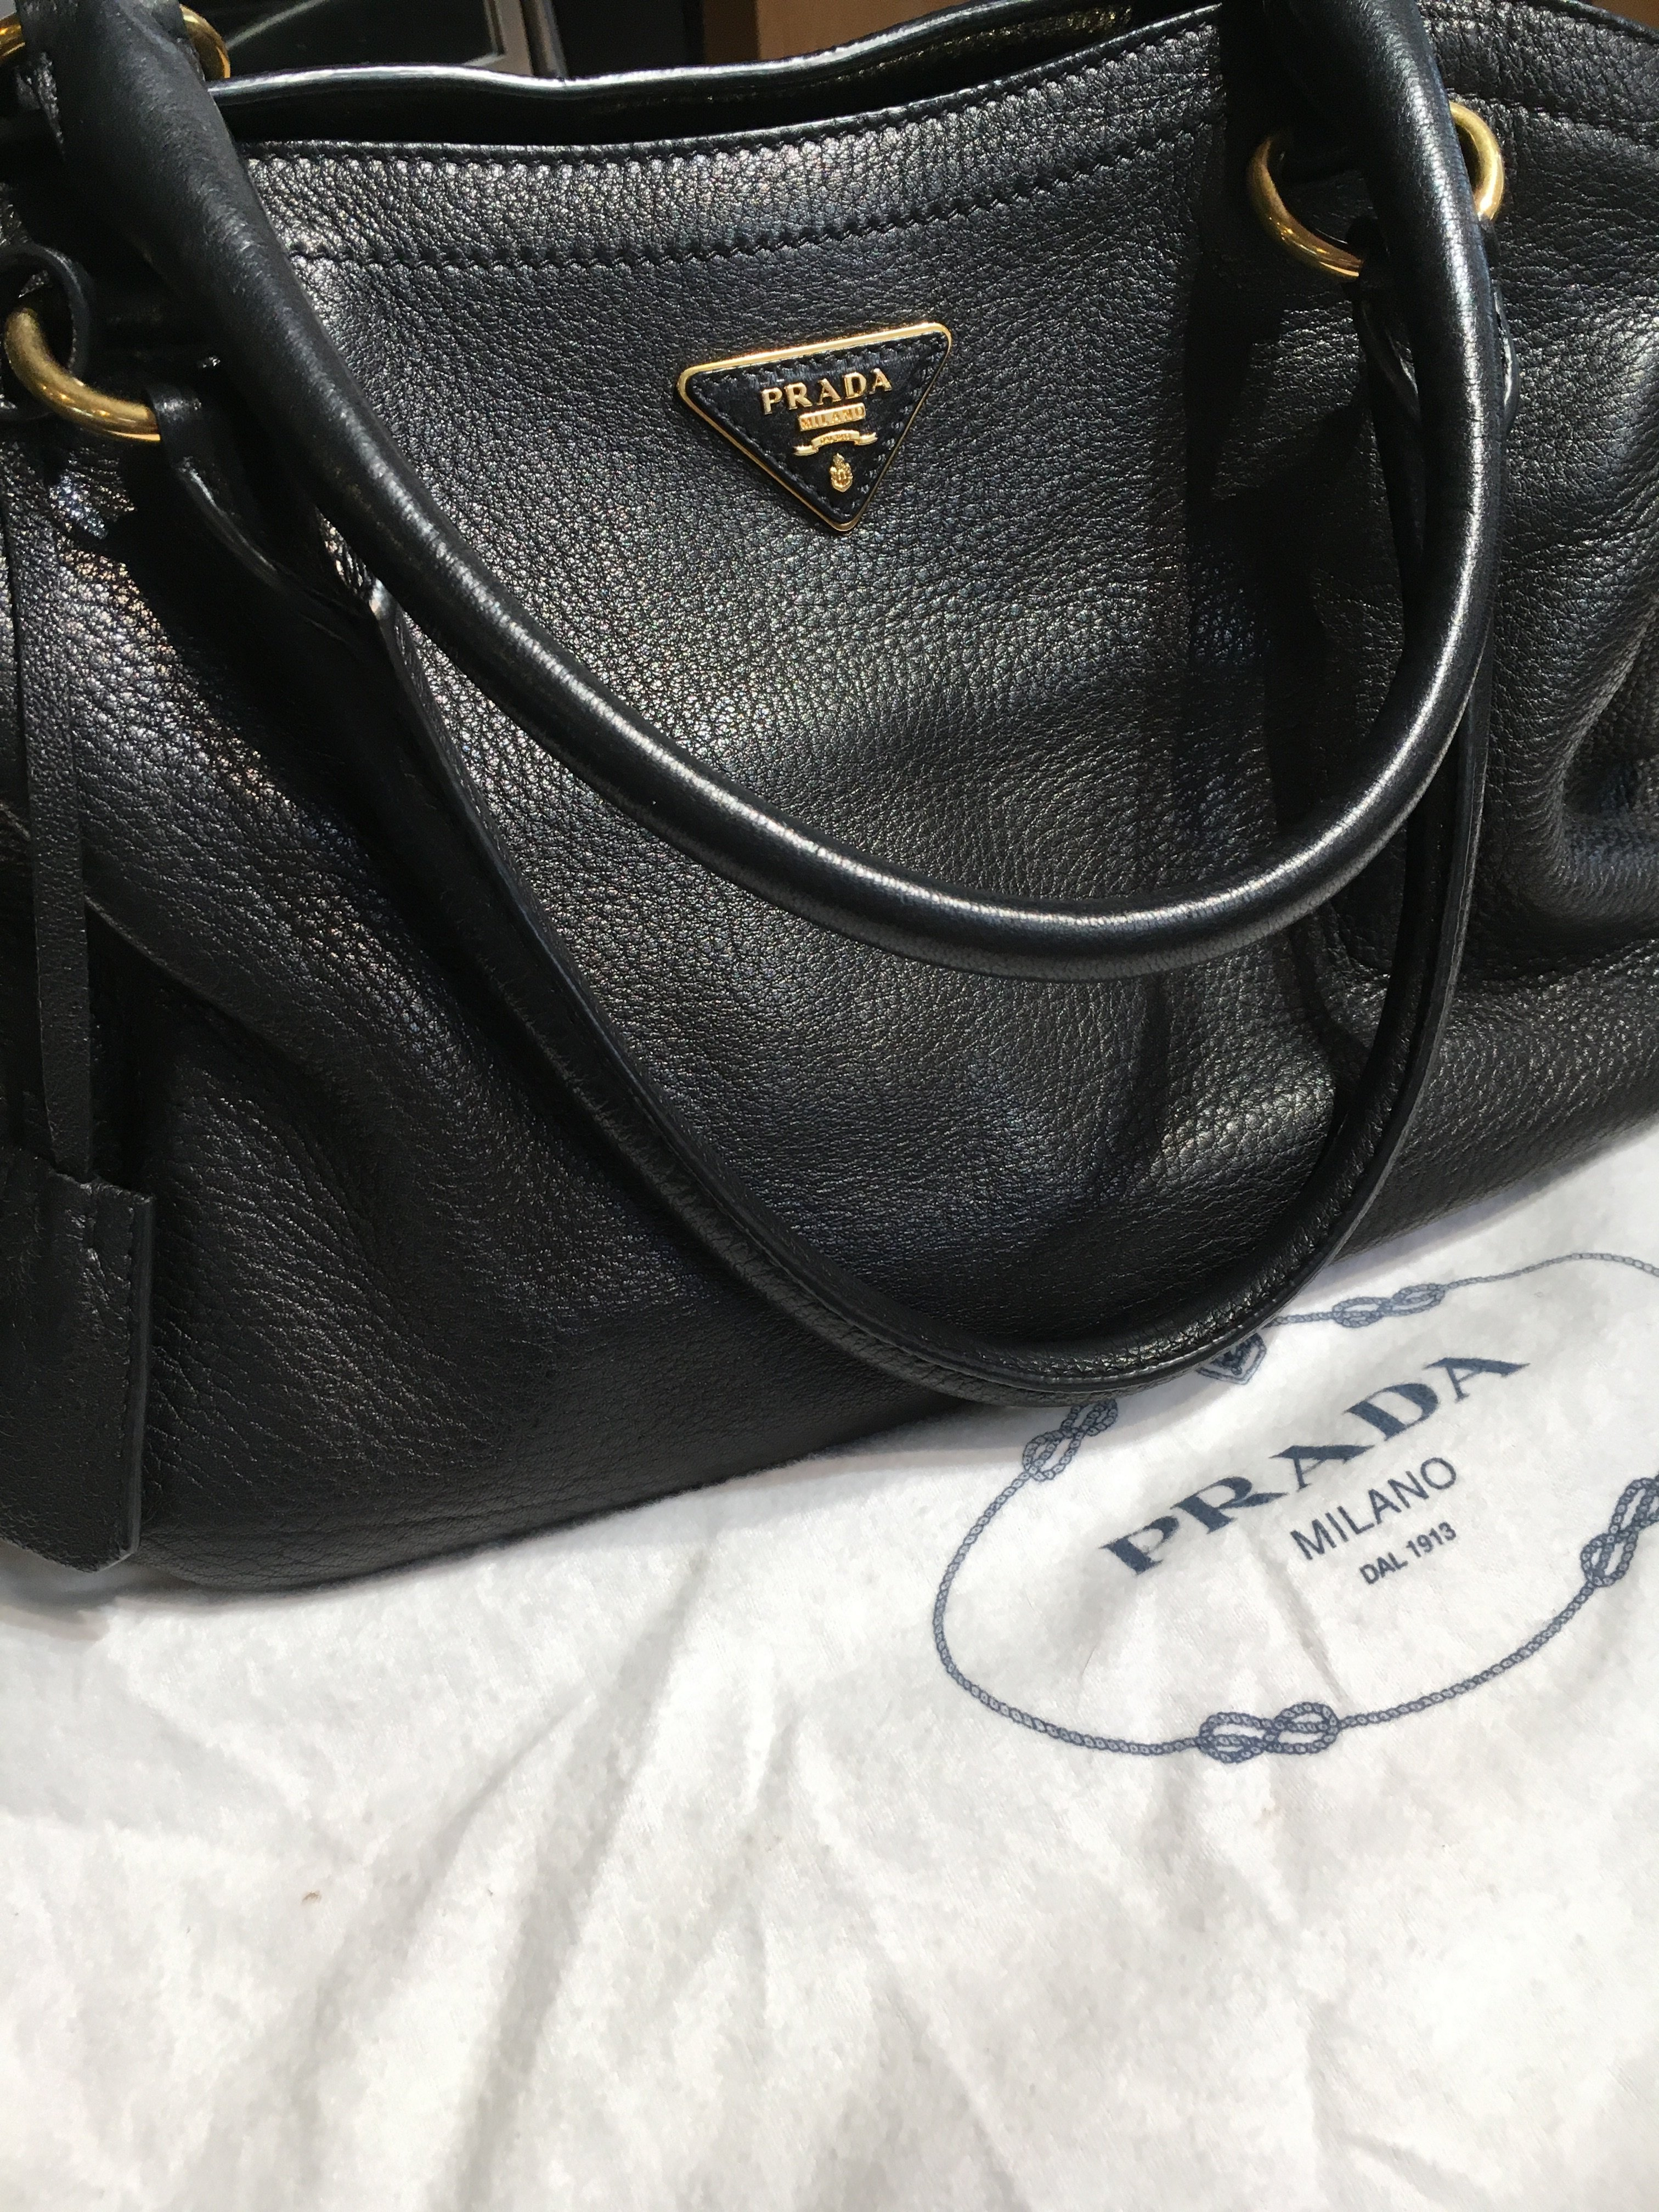 Vintage Deerskin Prada Cervo Nero Tote Bag. Find this Pin and more on  Products by Deleuse Fine Jewelry   Couture. 76b28ba68c027